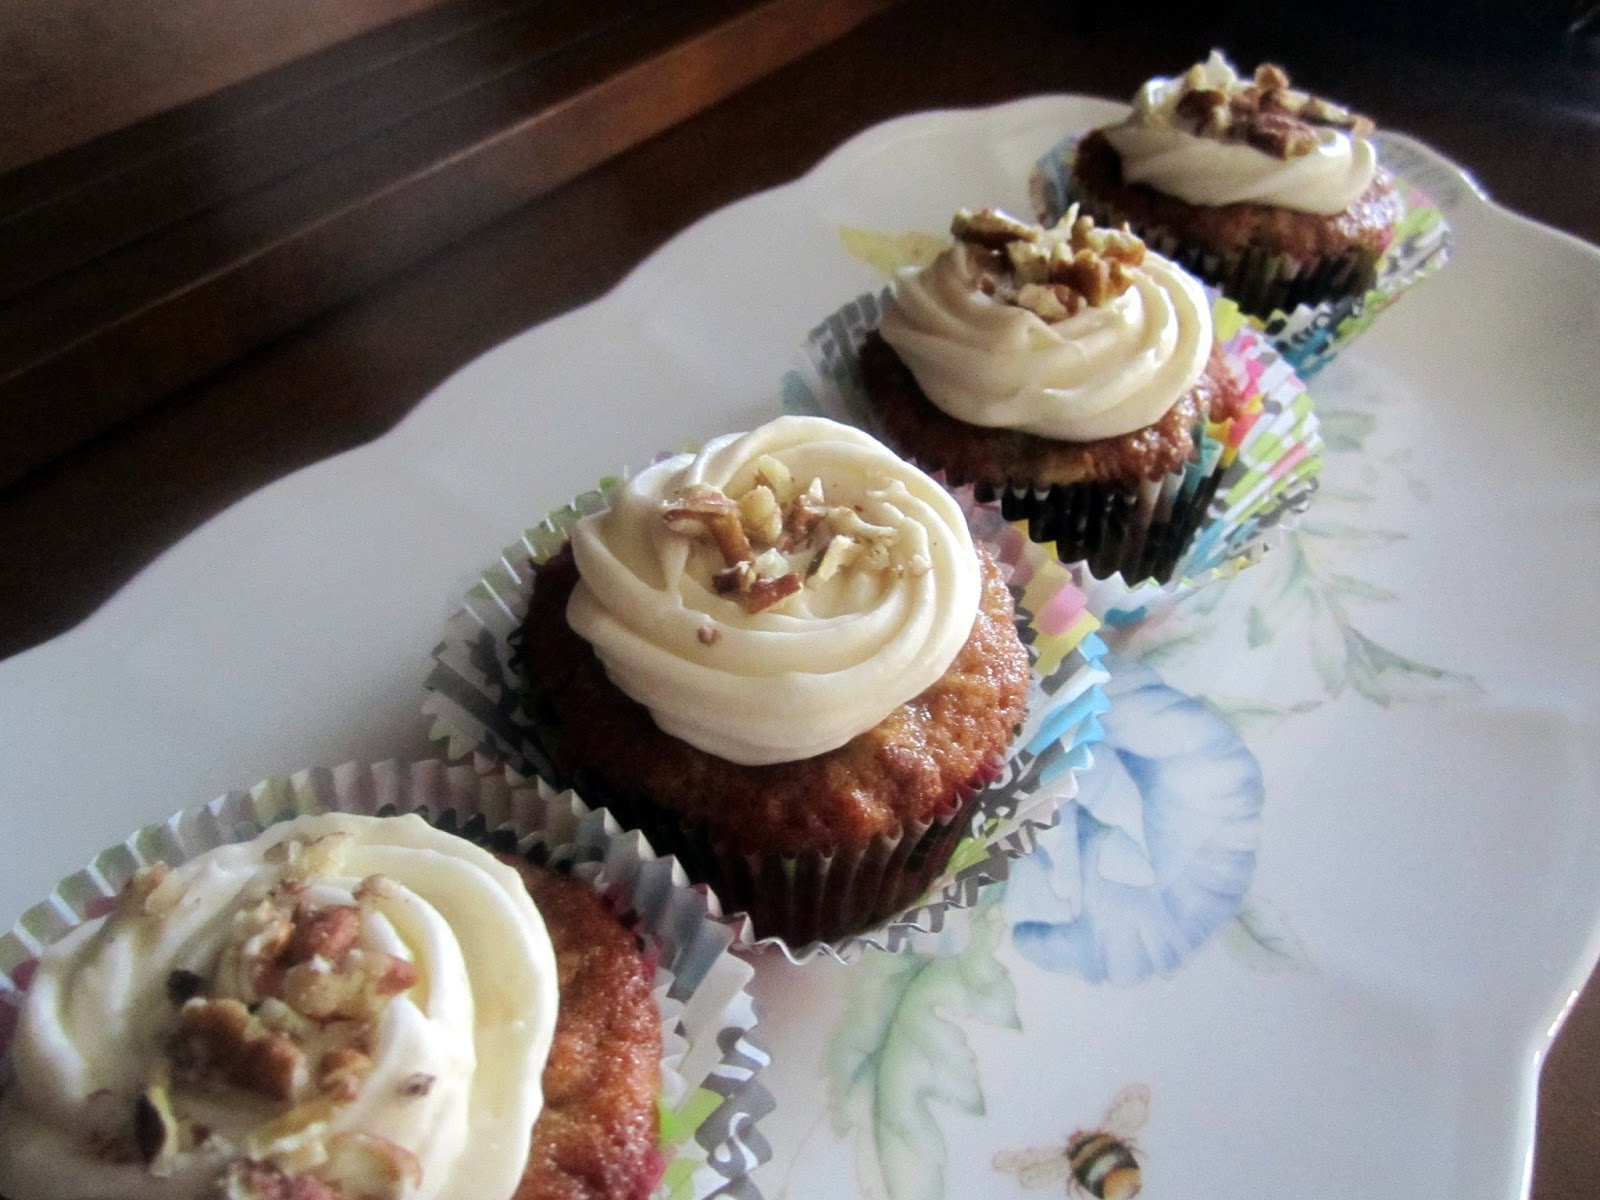 HUMMINGBIRD CUPCAKES WITH CREAM CHEESE FROSTING